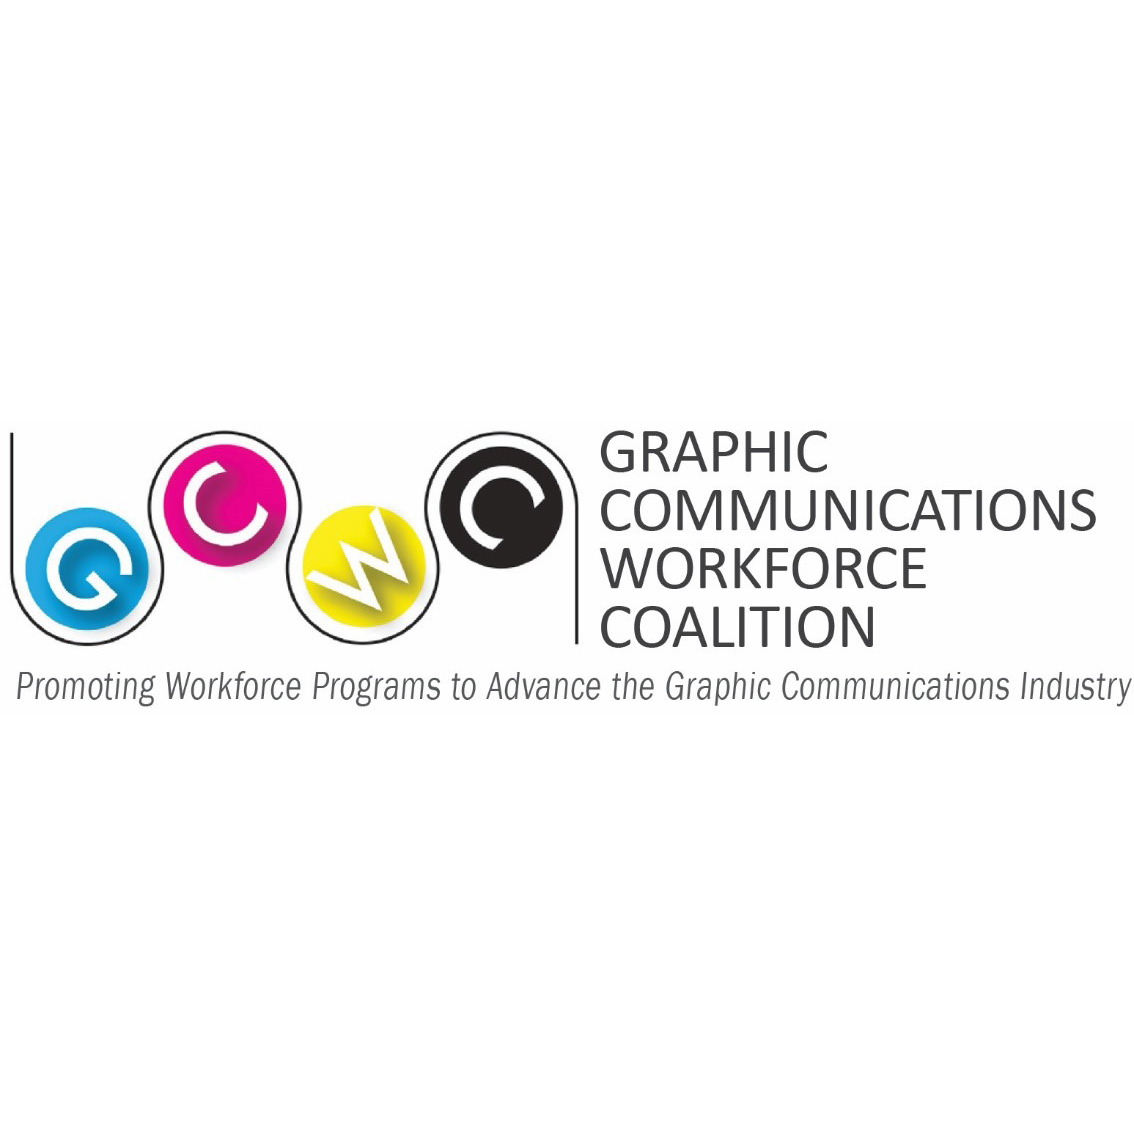 Graphic Communications Workforce Coalition